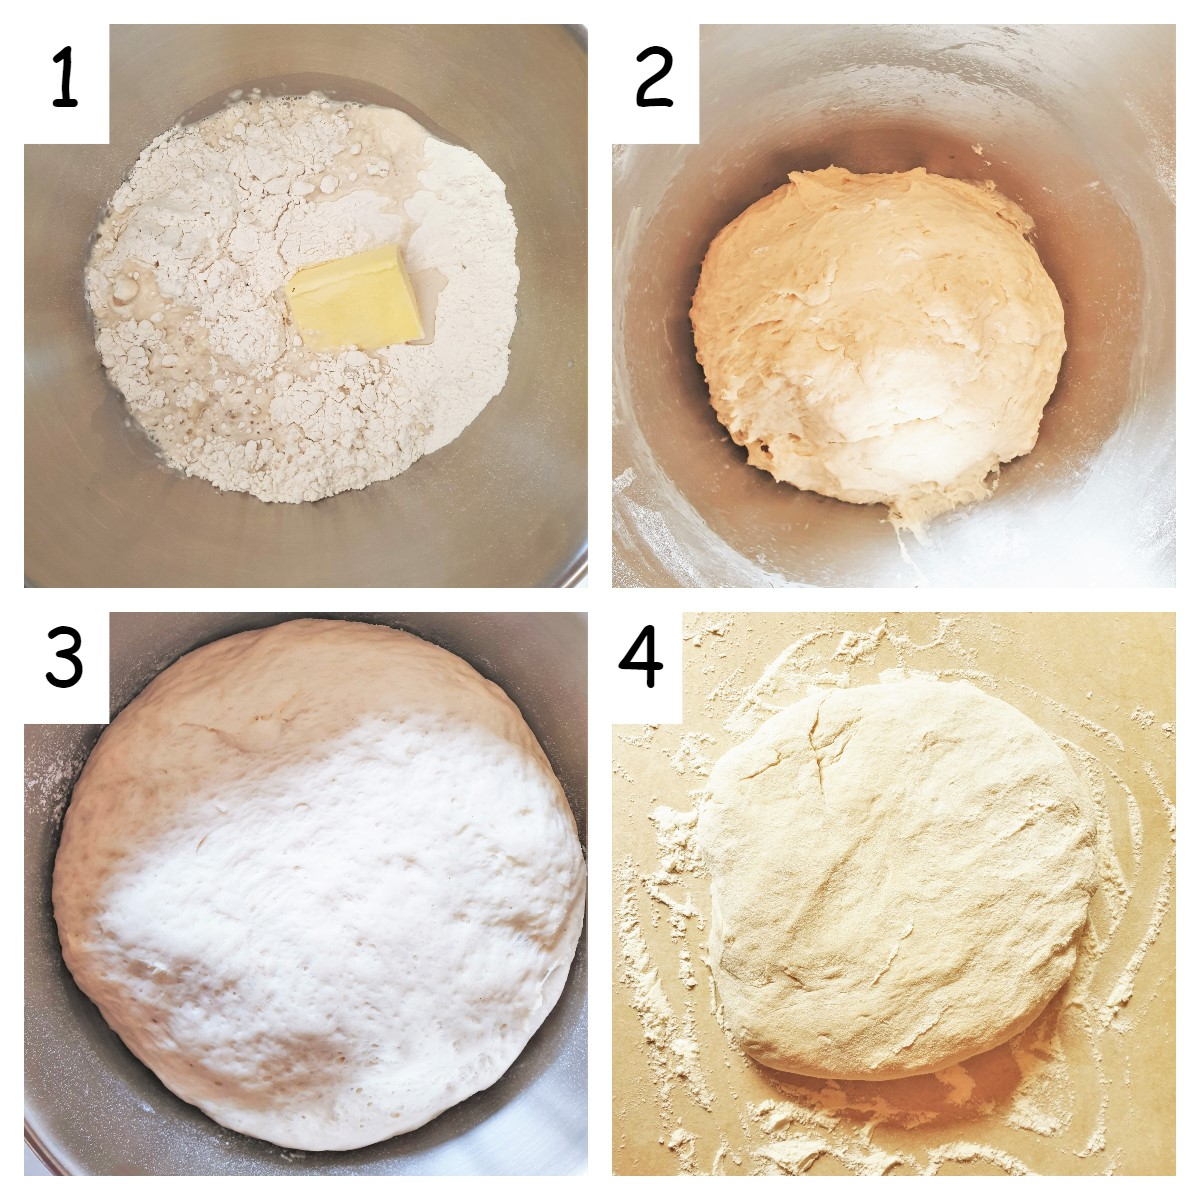 A collage of 4 images showing steps for mixing the Portuguese rolls.